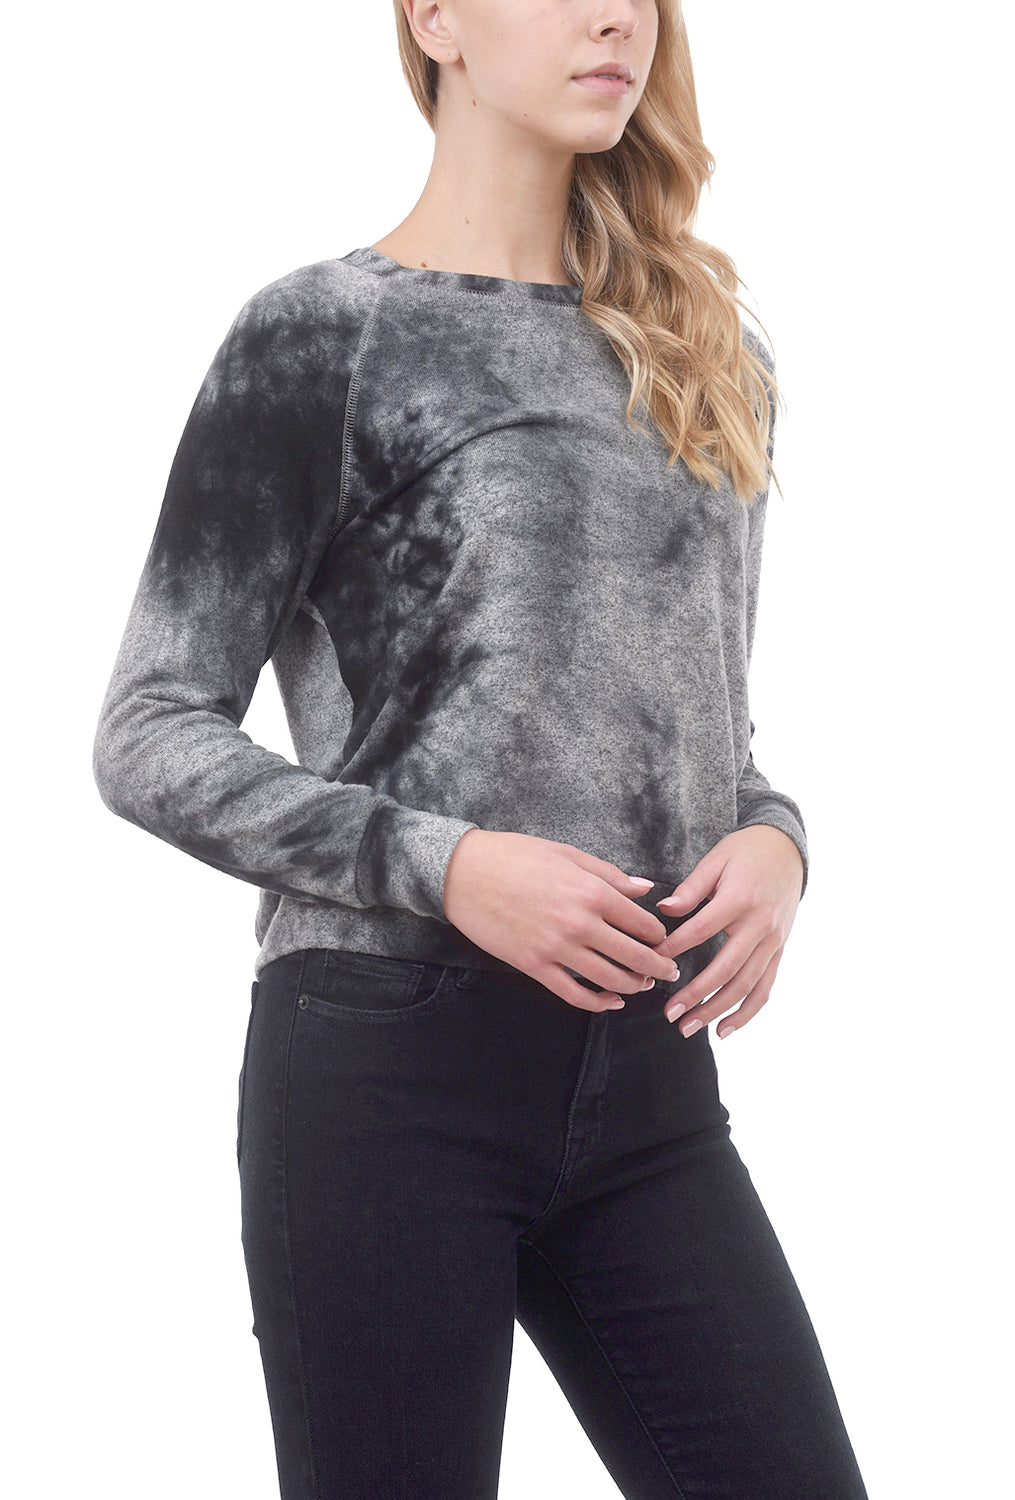 Cozy Tie-Dye Sweatshirt, Gray/Charcoal